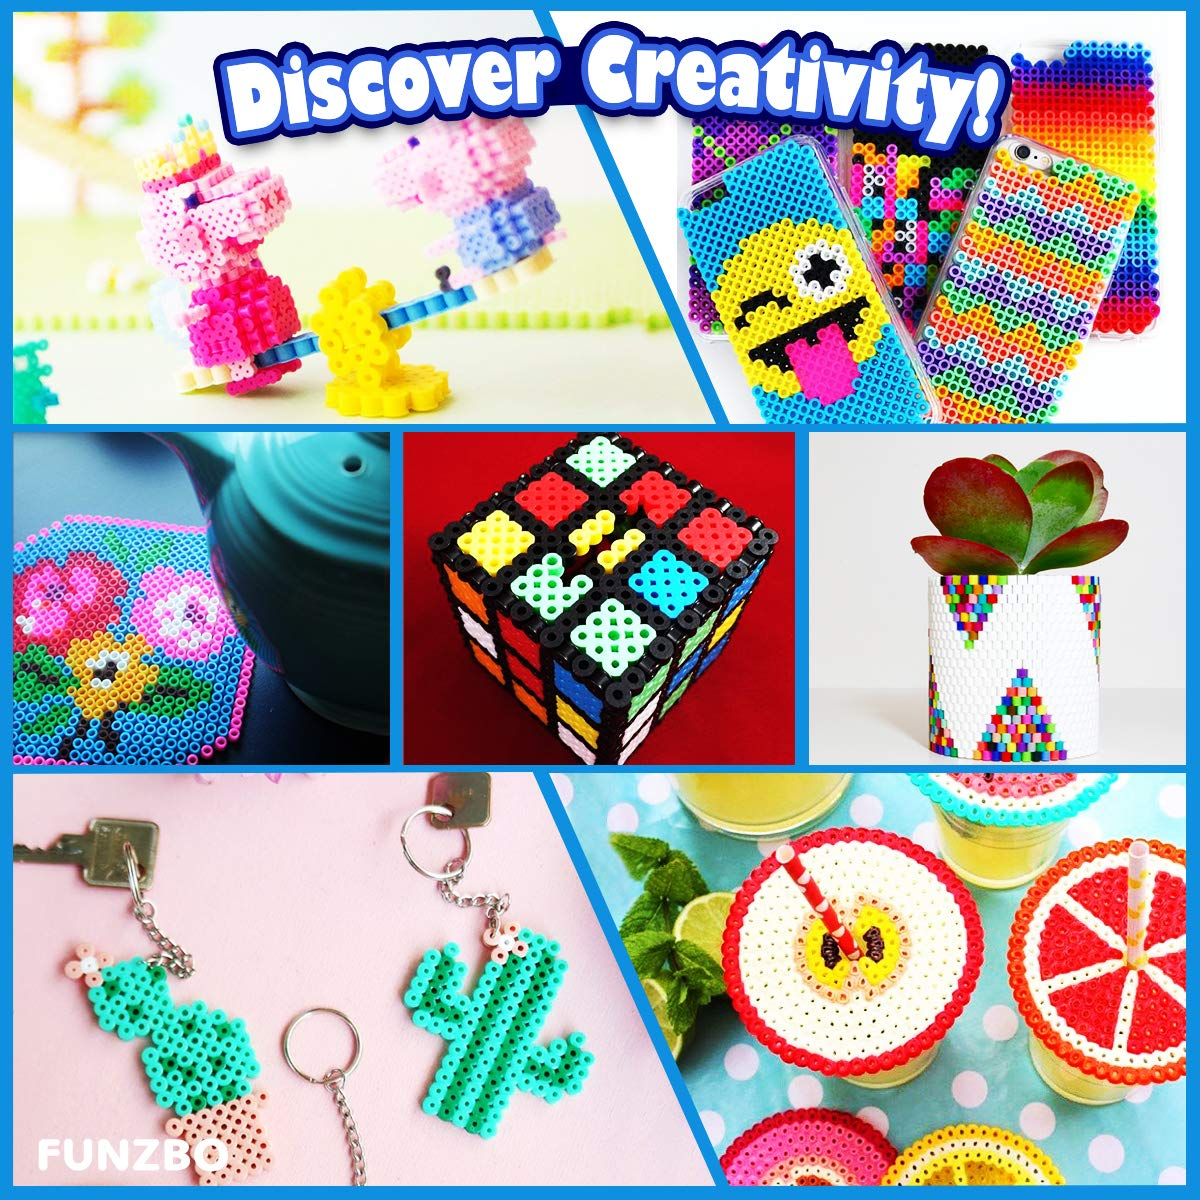 FunzBo Fuse Beads Craft Kit 111 Patterns Melty Fusion Colored Beads Arts and Crafts Pearler Set for Kids 5500 5mm Bead 9 pegboards for Boys Girls Age 5 6 7 Classroom Activity Gift Toy